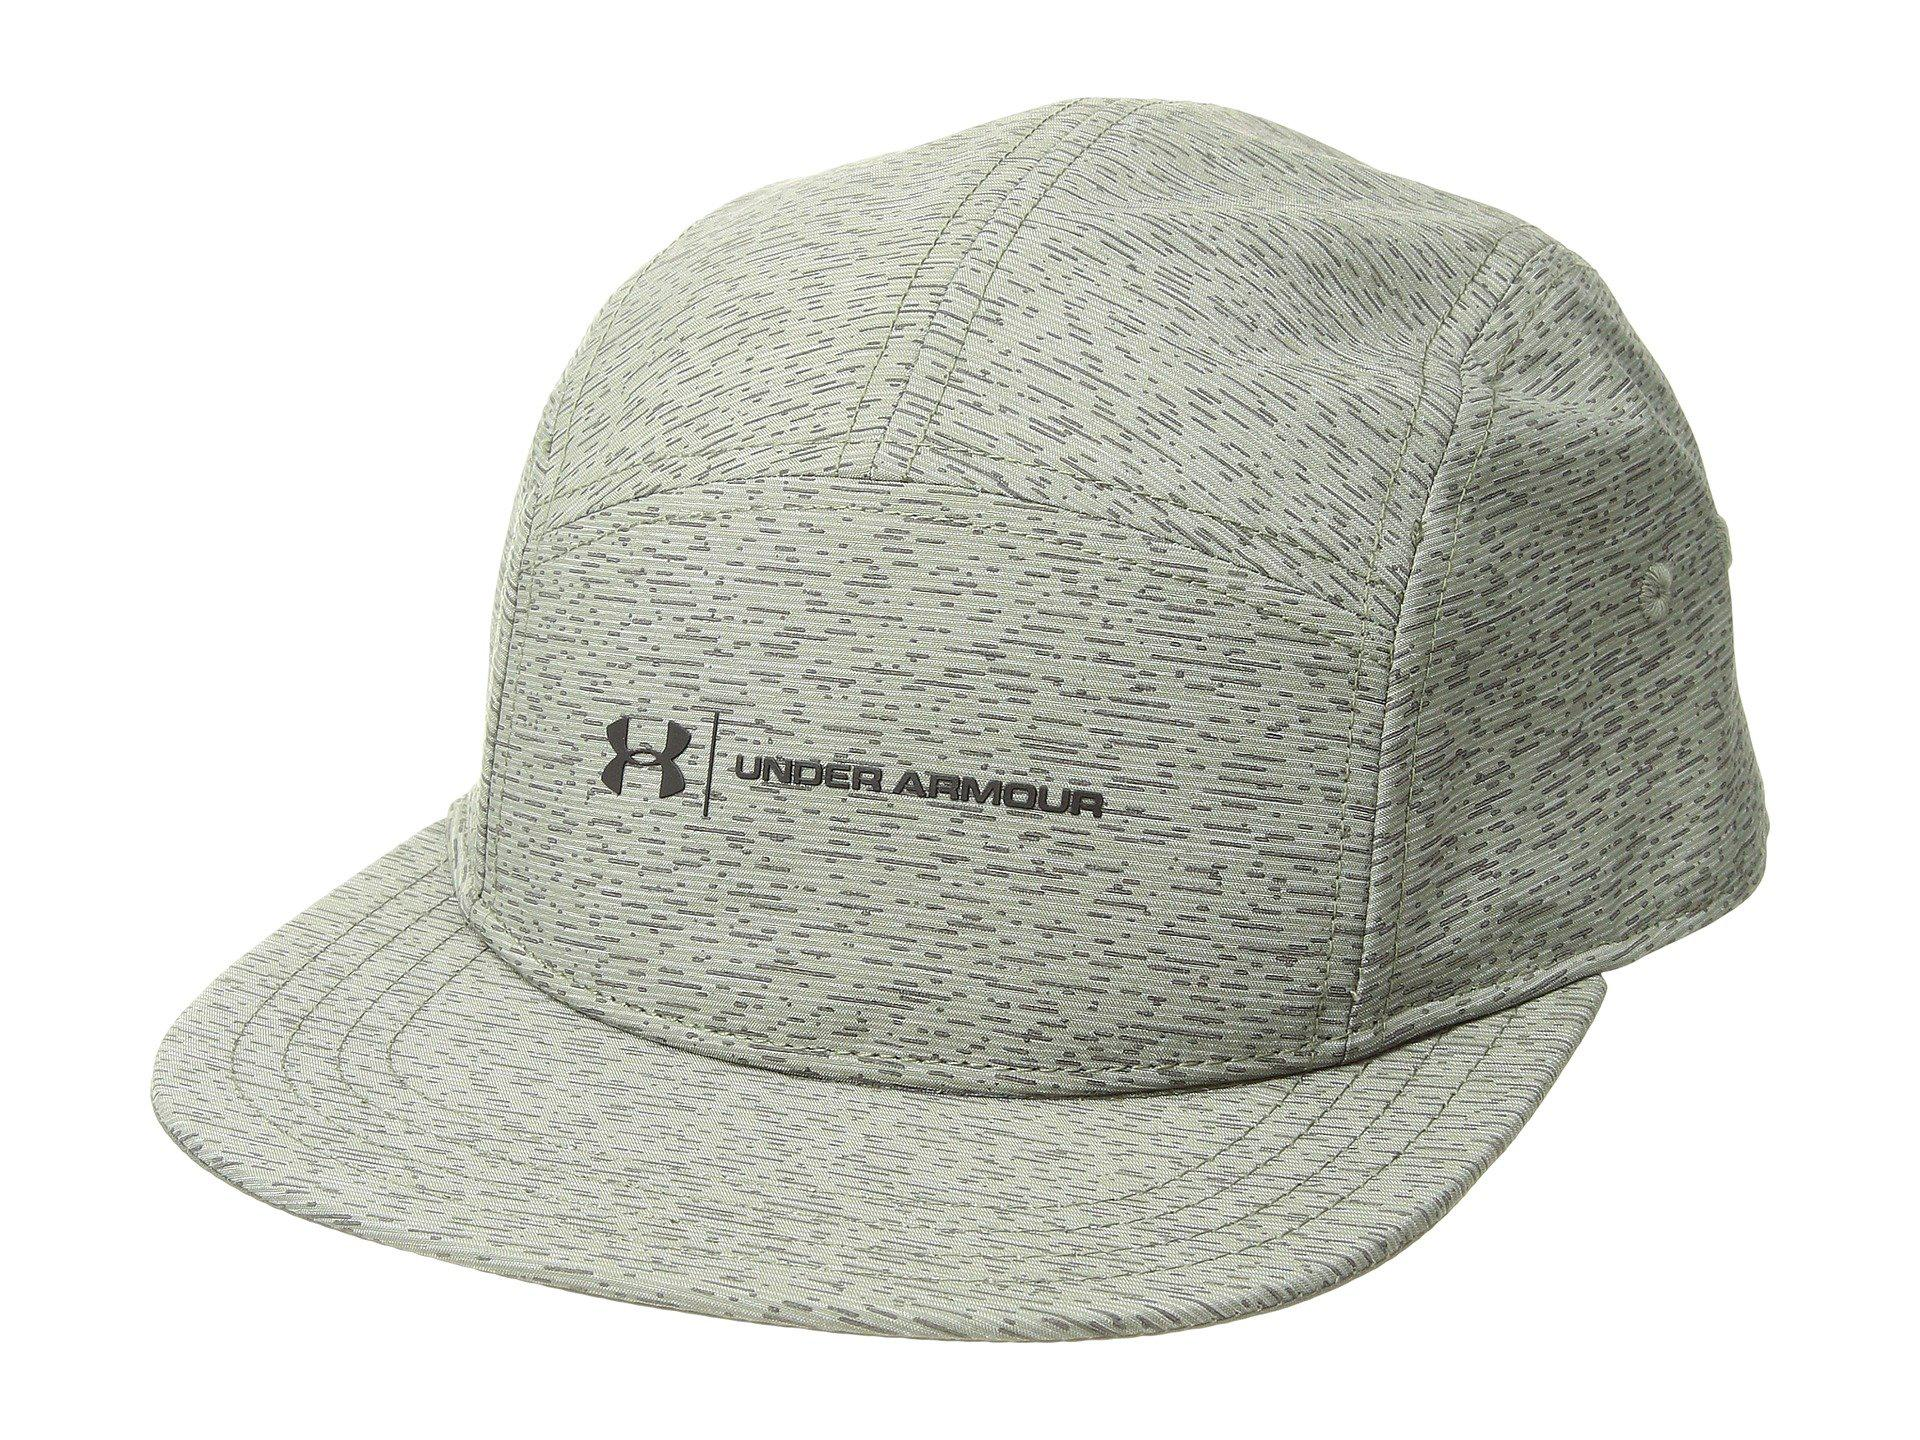 96080c50d65 ... cheapest lyst under armour reflective camper cap in green for men f5083  c31f4